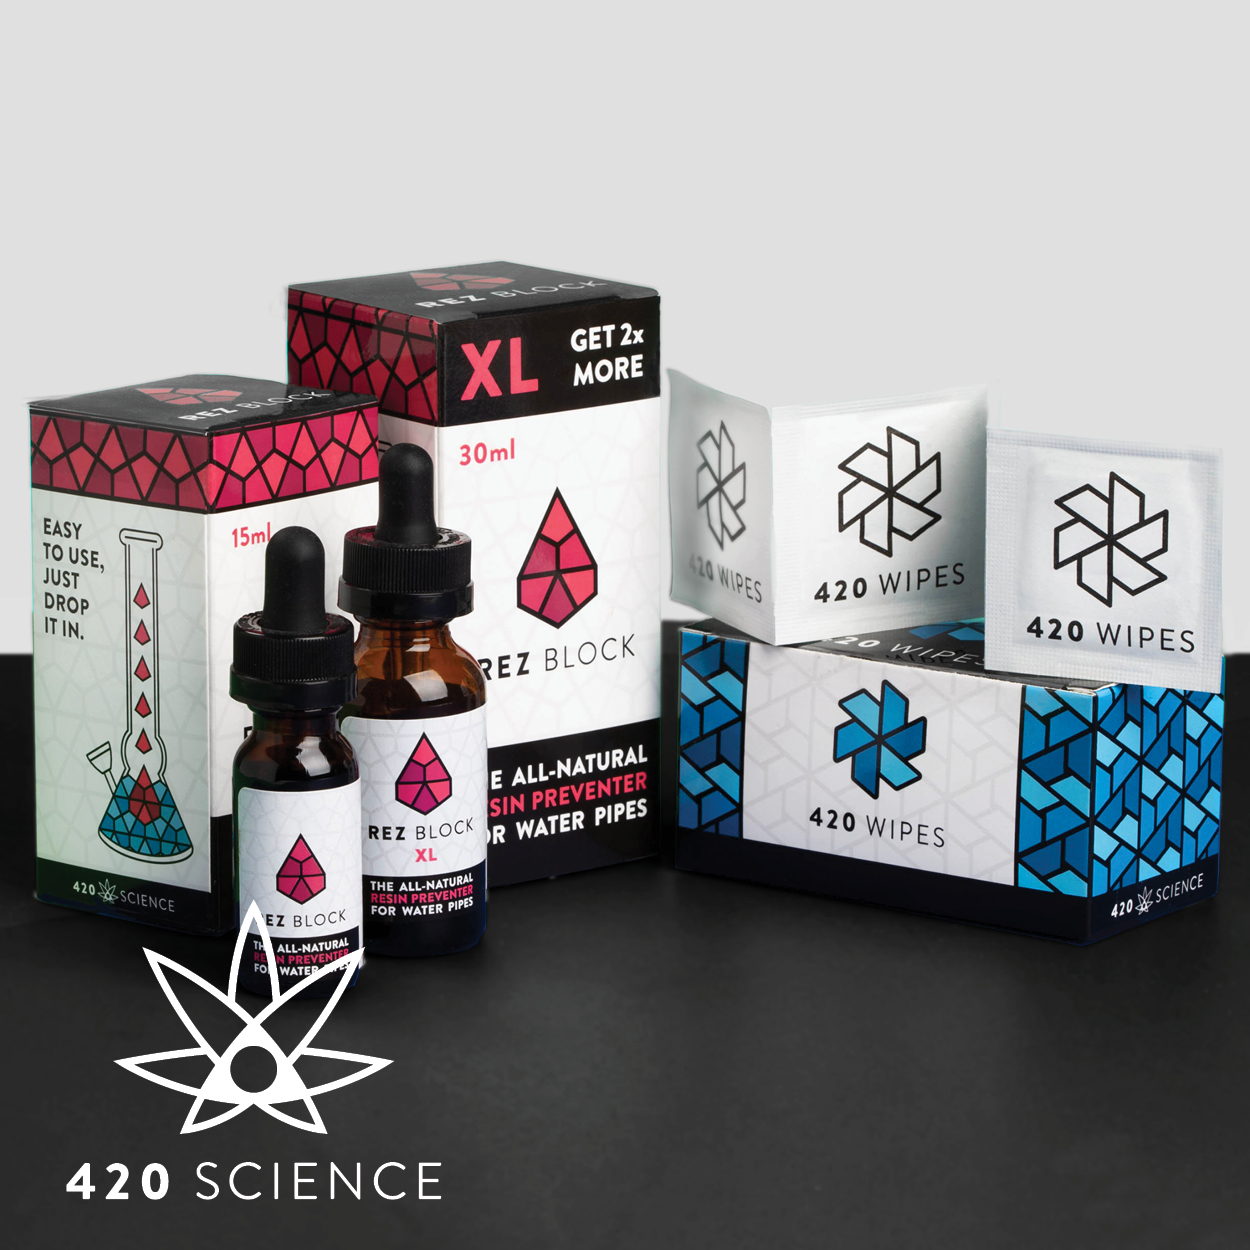 420 Science - A Redesign With a Purpose